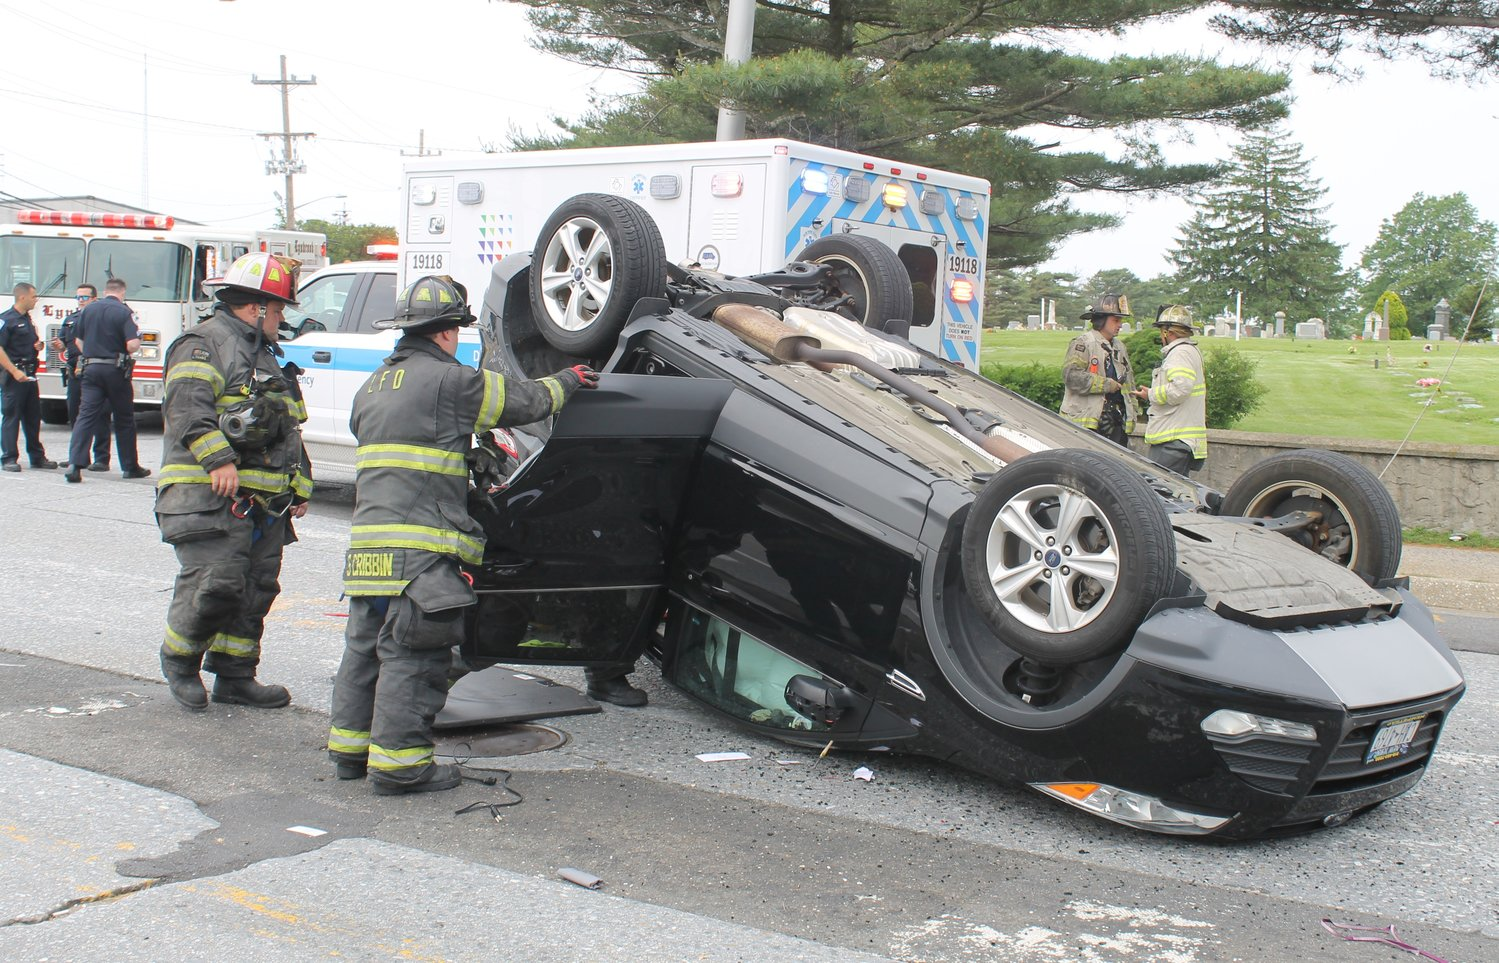 For the second time in two days, Lynbrook emergency personnel responded to an overturned vehicle in the village.